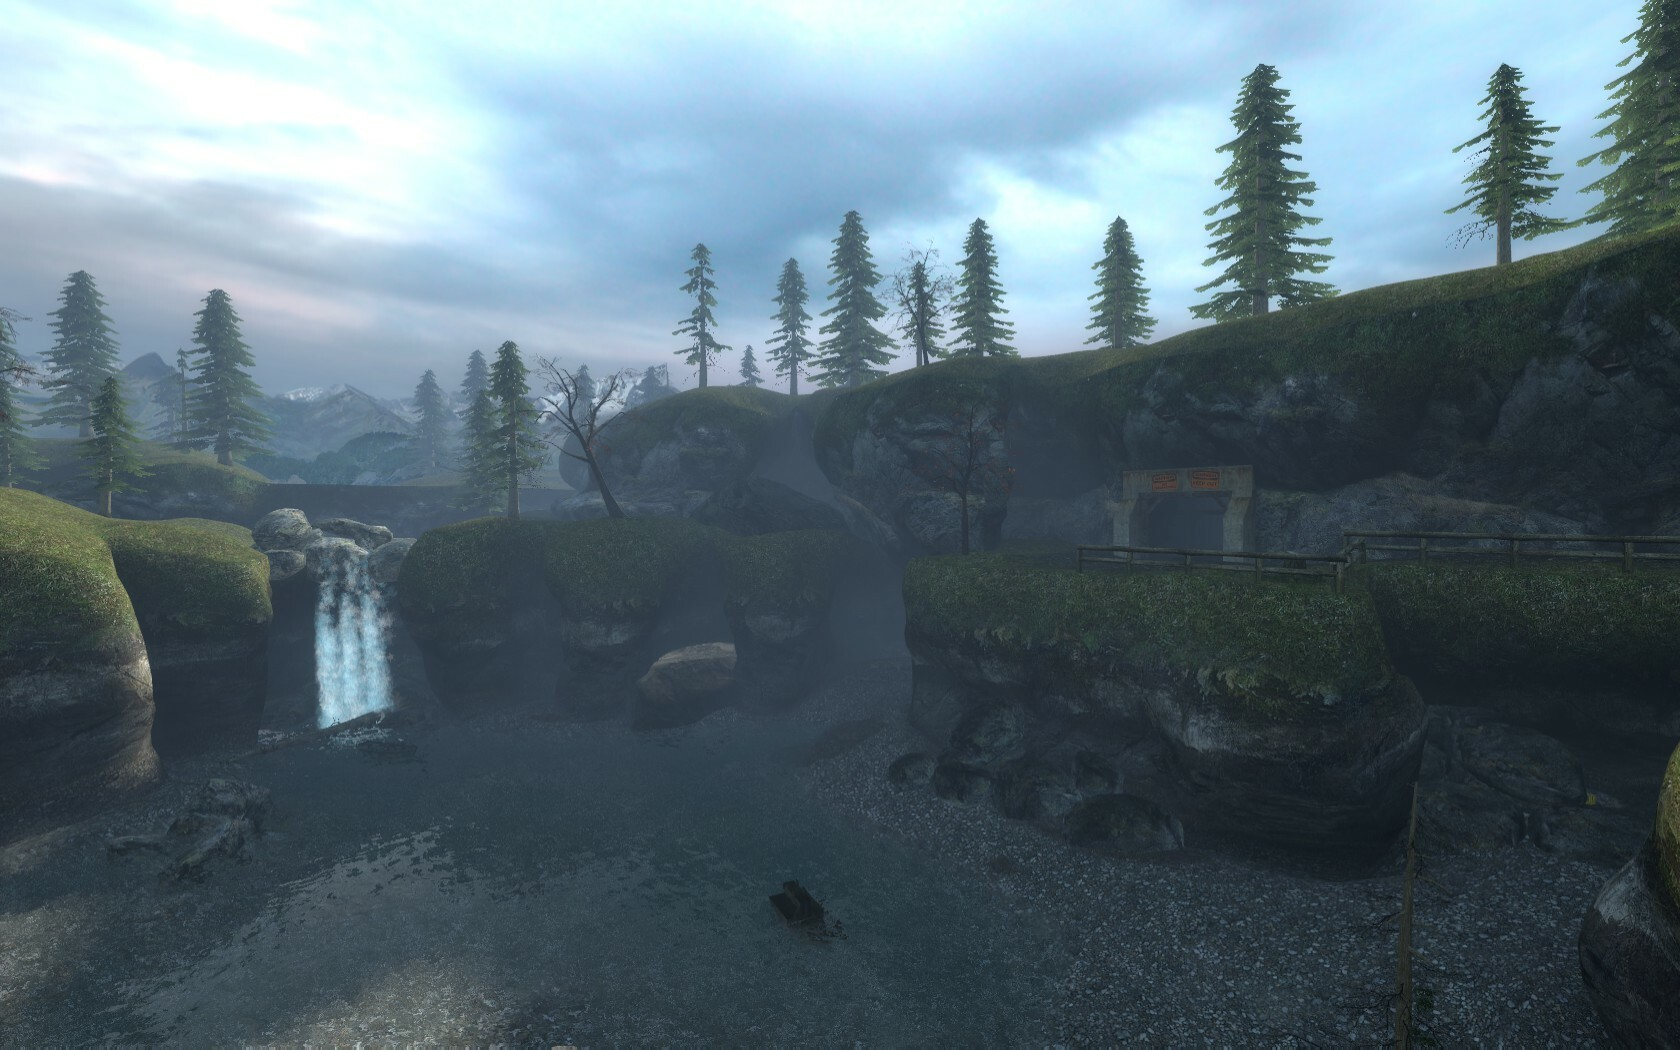 This is the area the player leaves the mines and enters the forest.